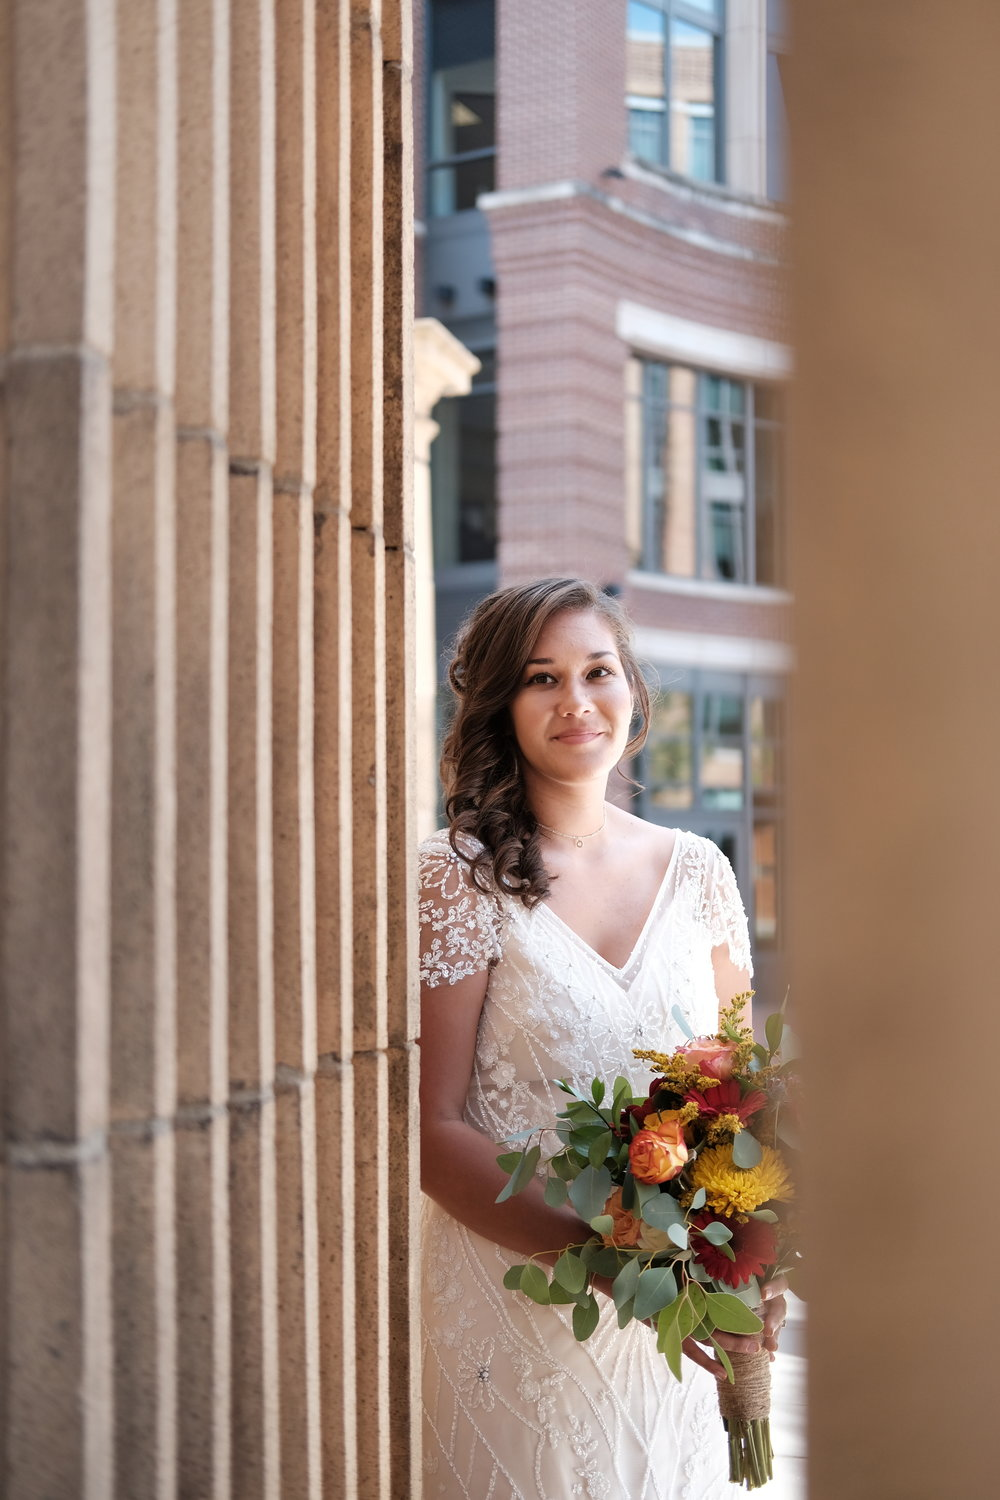 North Bank Pavilion Park Wedding - Downtown Columbus, OH - Jessica + Dean52.JPG